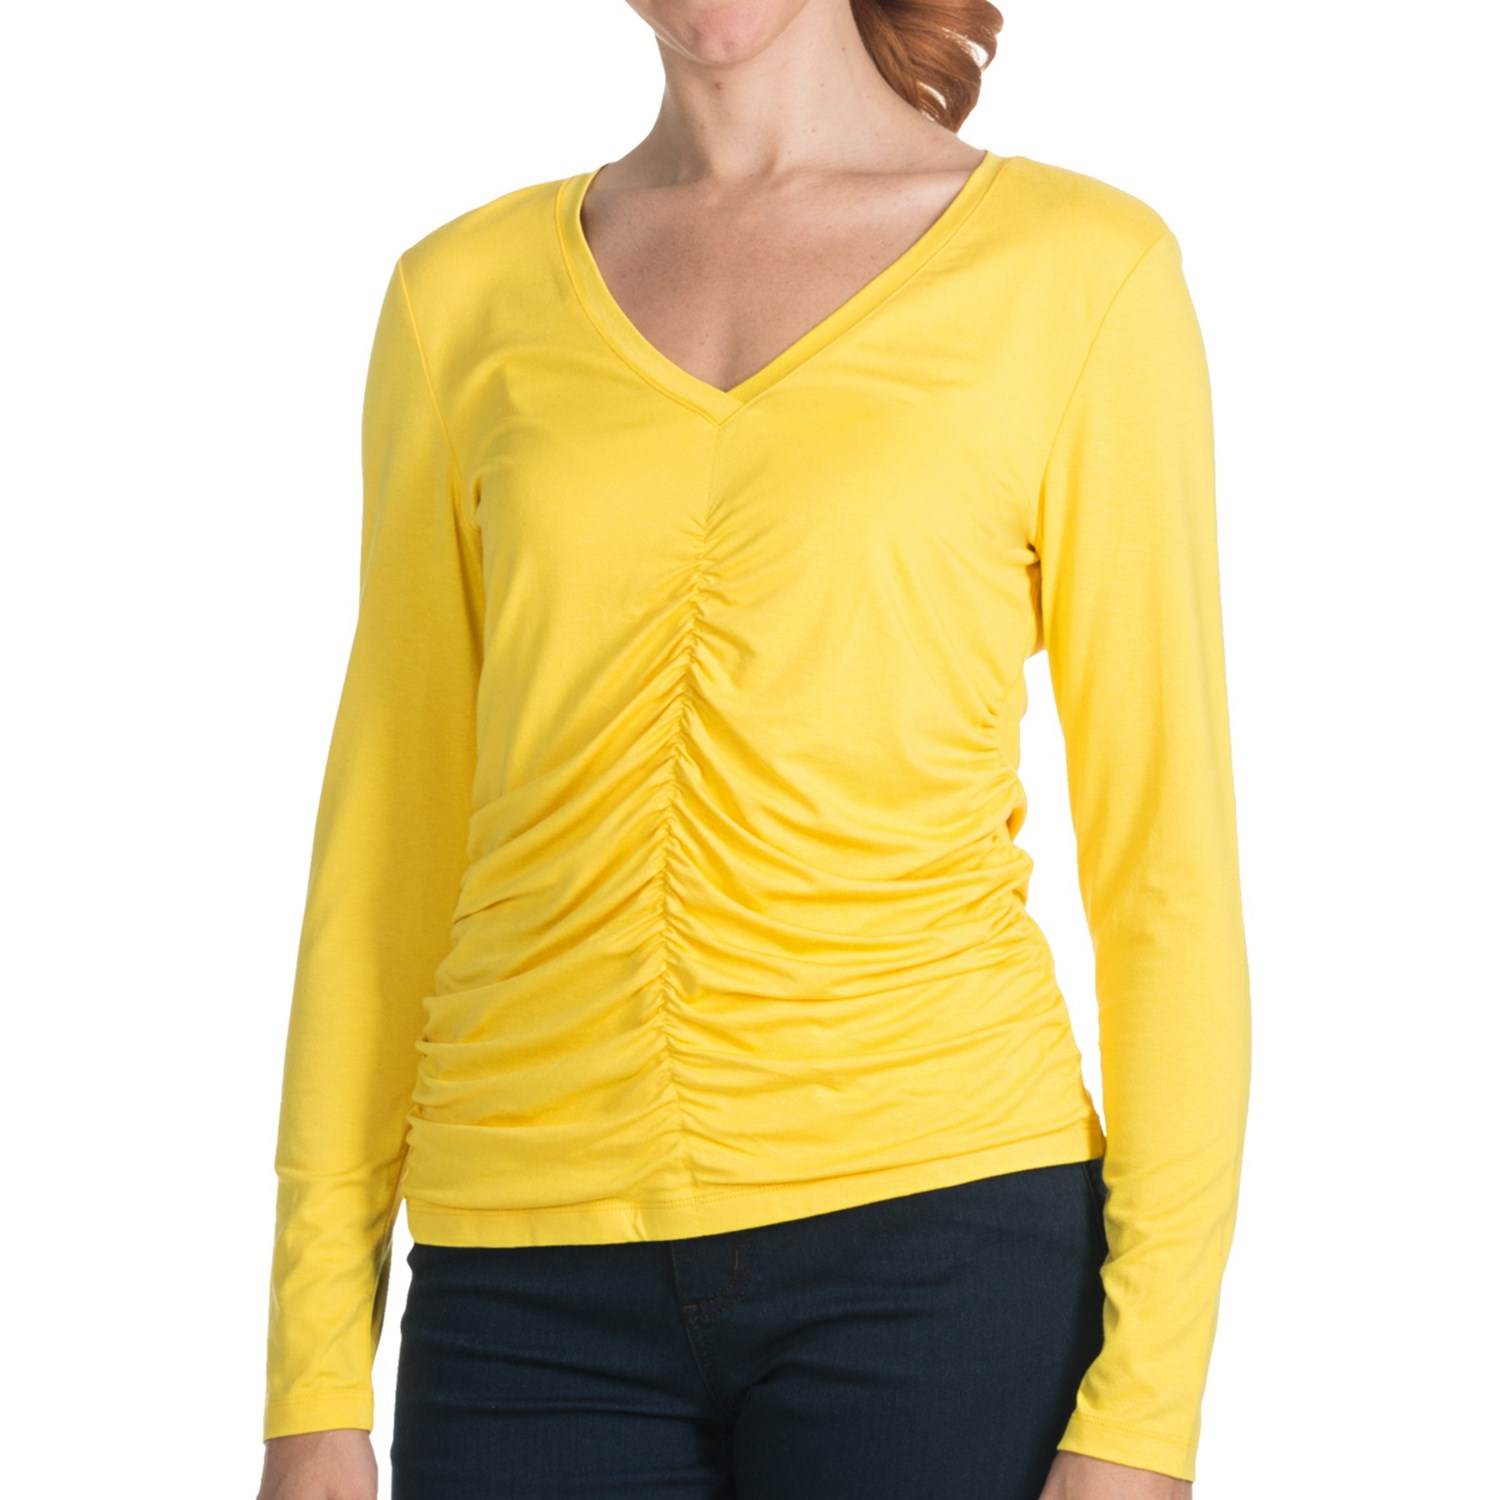 Paperwhite Ruched Knit Shirt V Neck Long Sleeve For